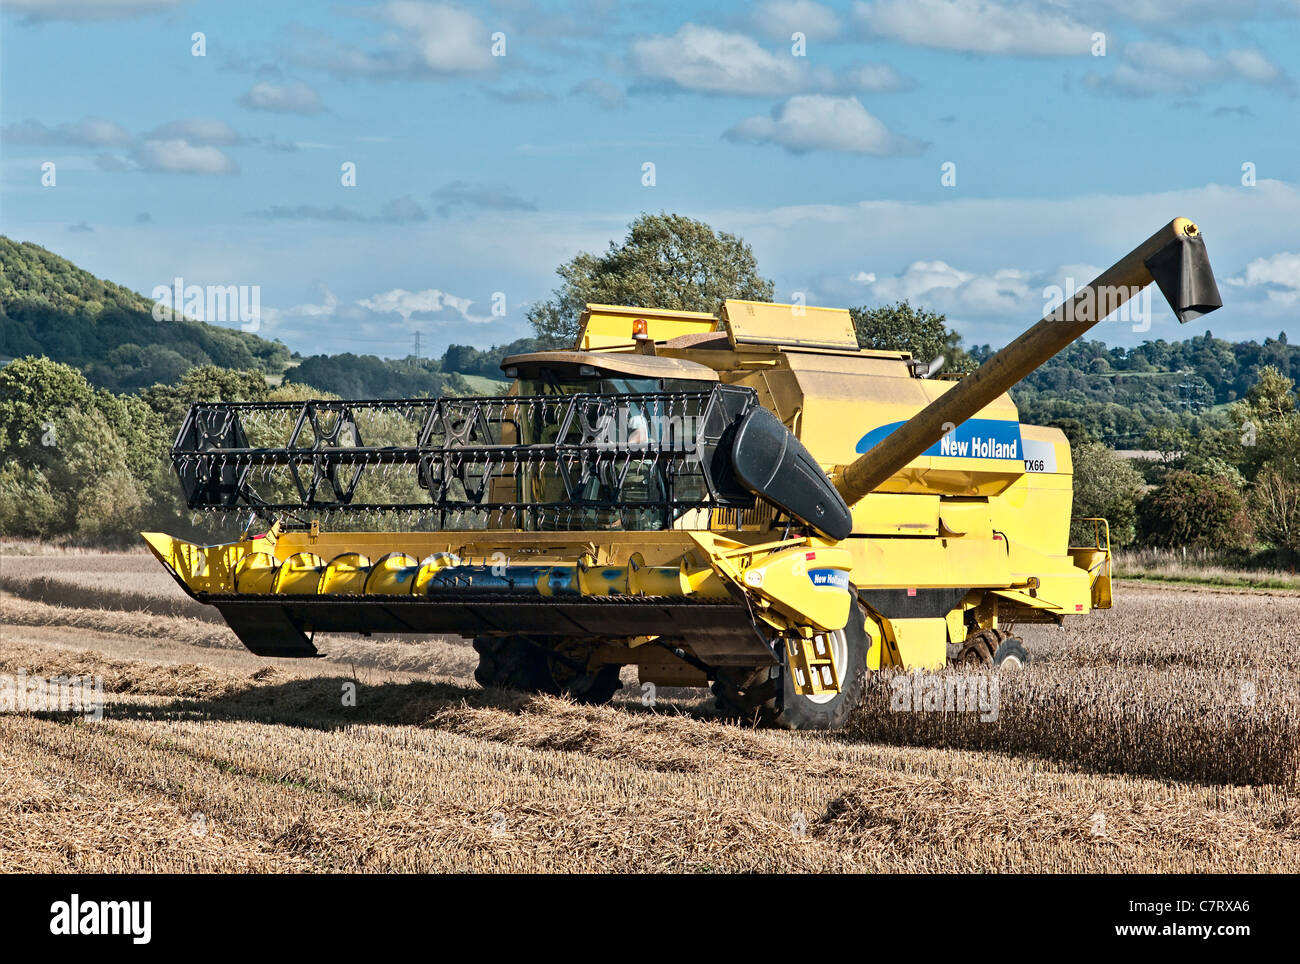 New Holland TX66 harvester with delivery feeder extended prior to unloading - Stock Image